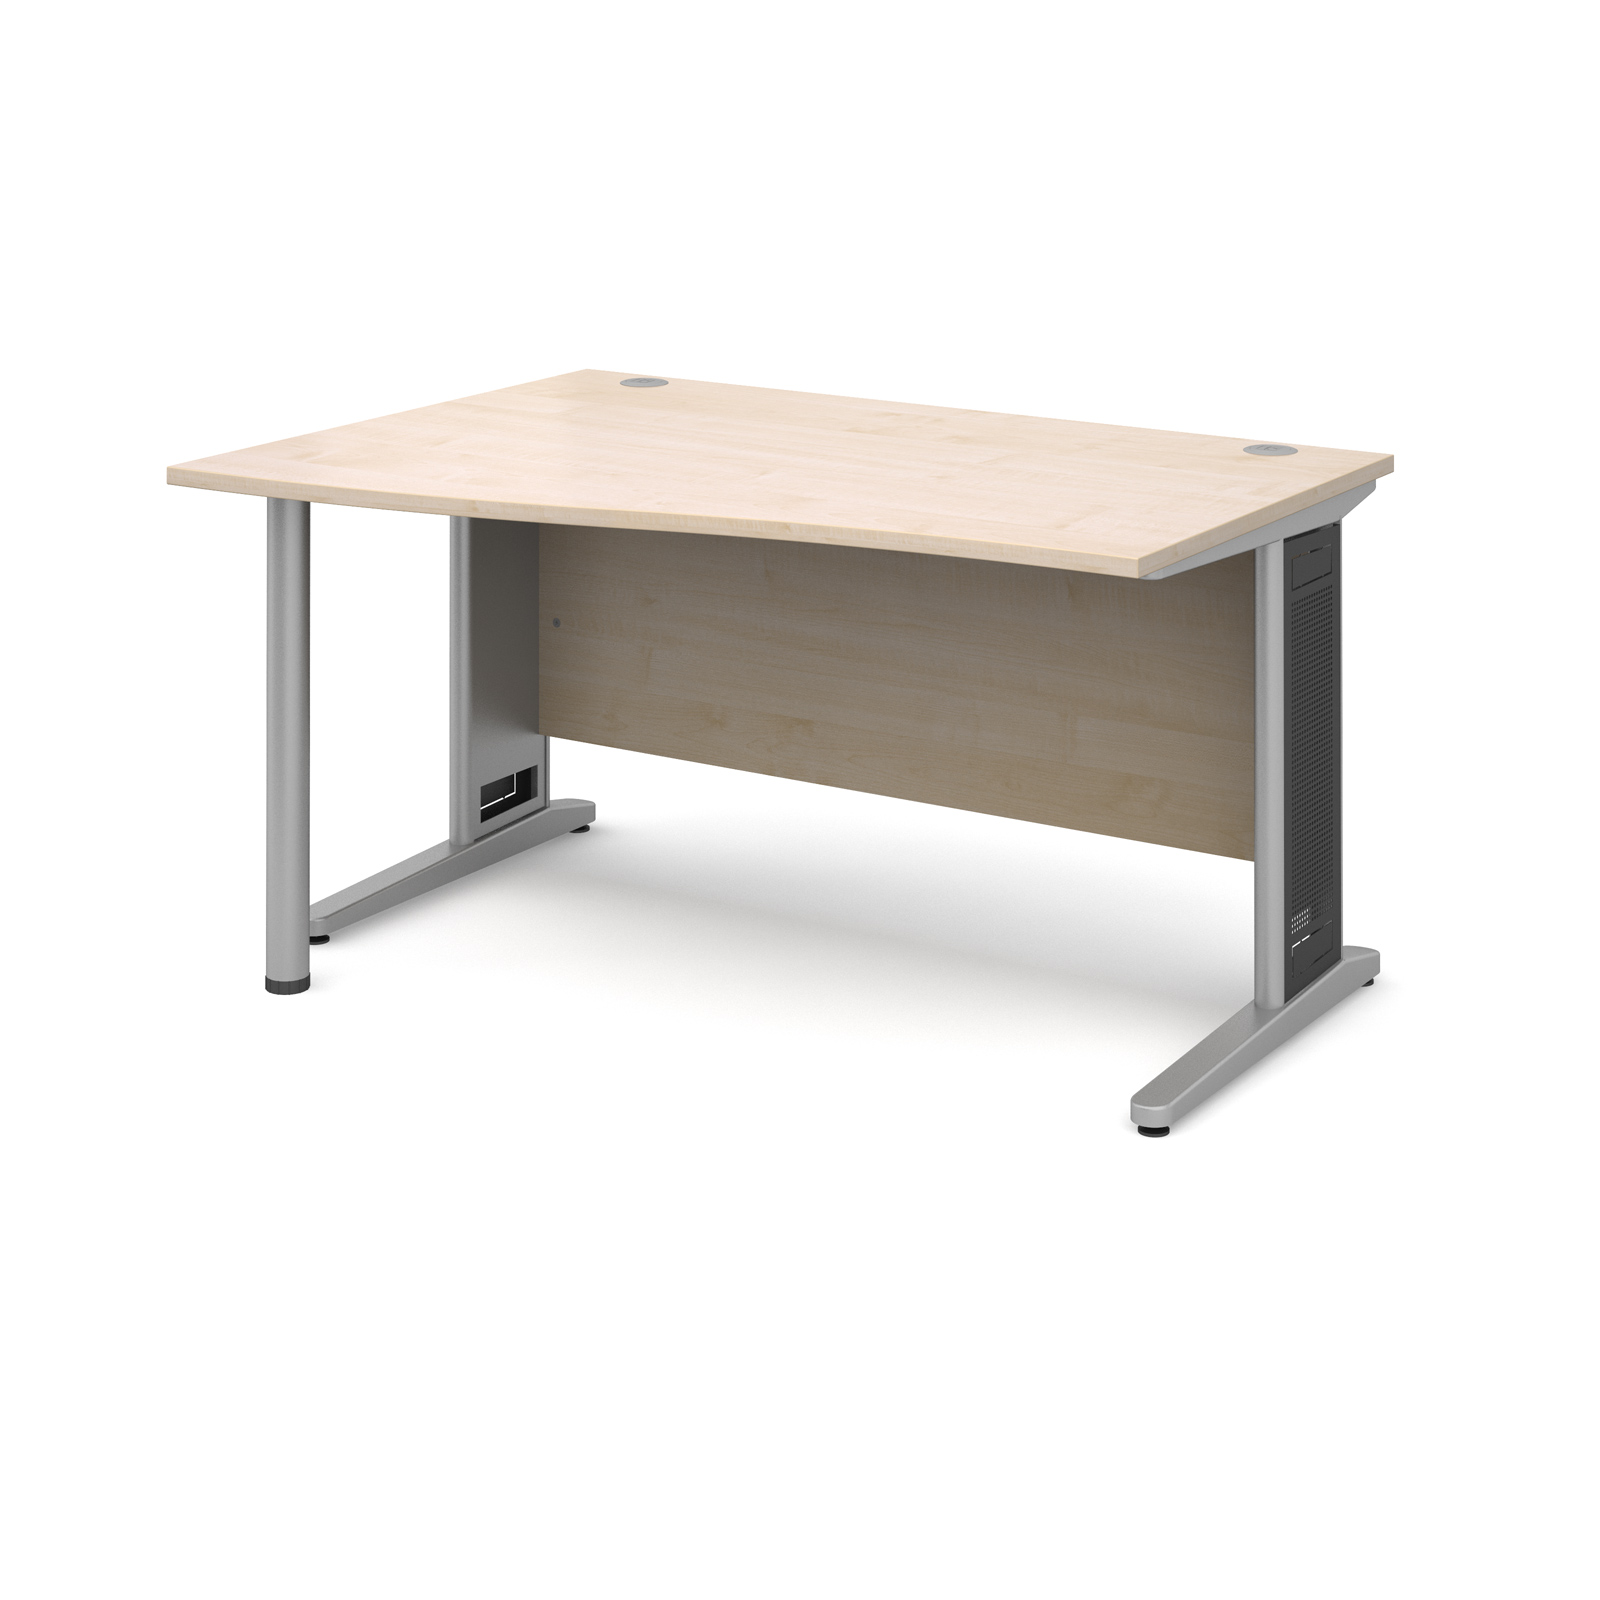 Largo left hand wave desk 1400mm - silver cantilever frame with removable grill, maple top